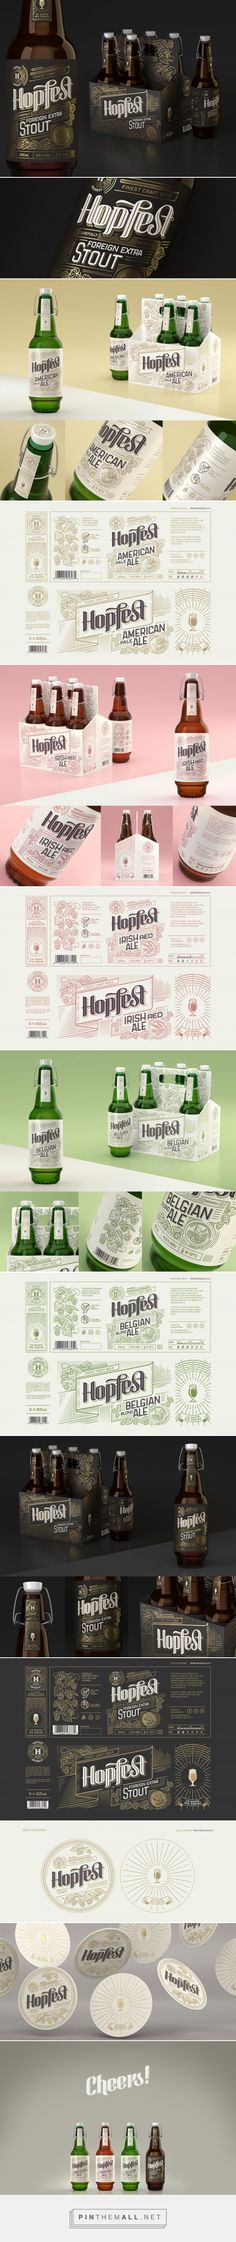 Hopfest Craft Beer packaging design concept by Marek Jagusiak - http://www.packagingoftheworld.com/2018/01/hopfest-craft-beer.html